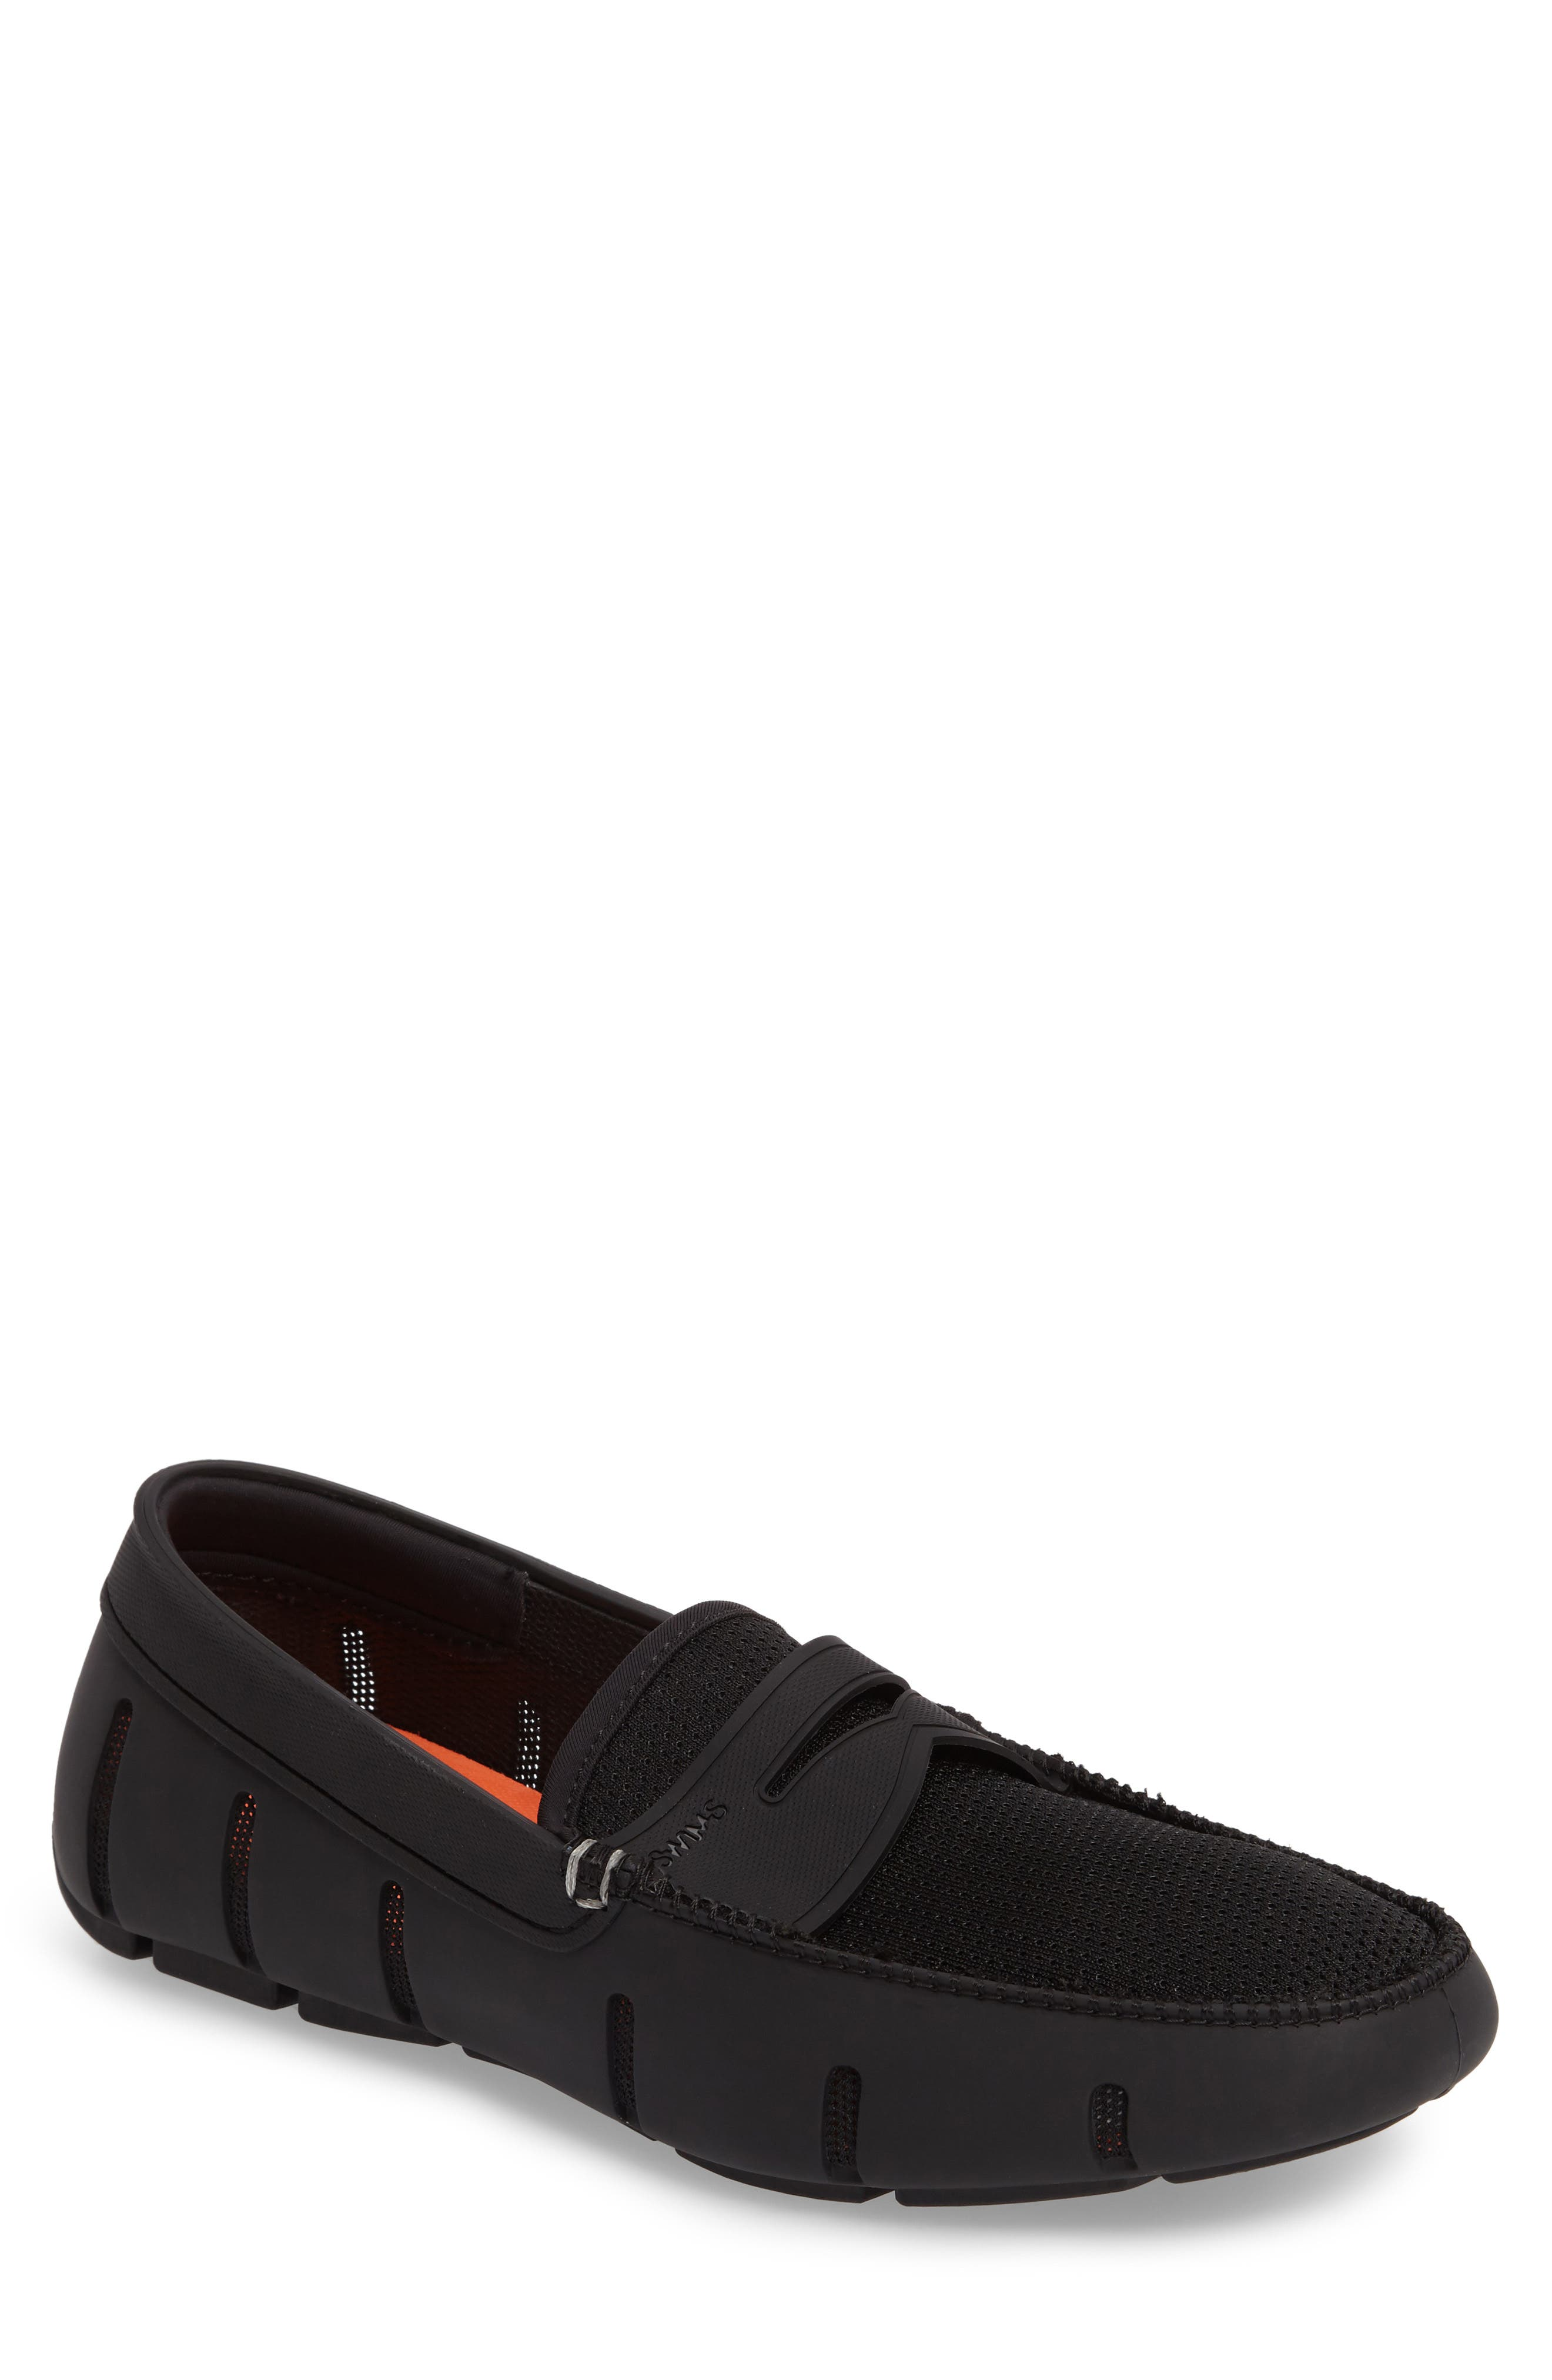 SWIMS, Penny Loafer, Main thumbnail 1, color, BLACK/BLACK